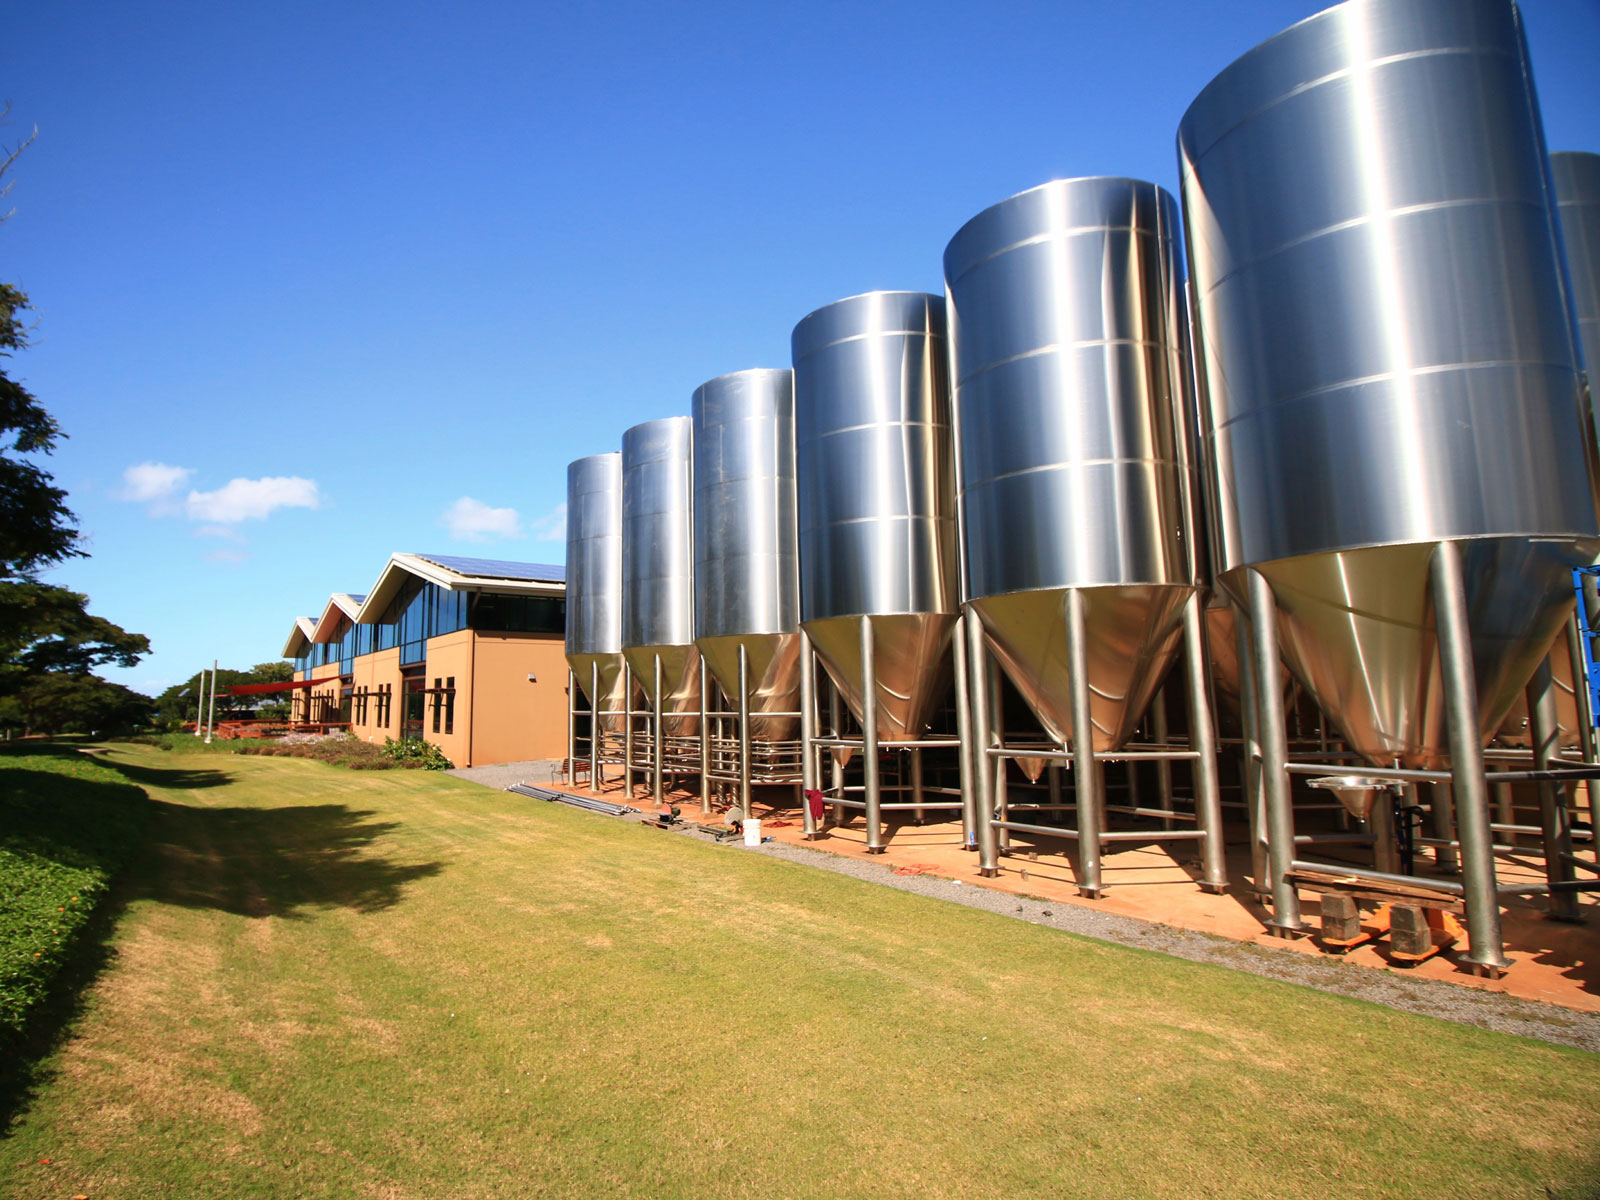 Maui Brewing Plans to Sell 'Grid-Independent' Beer This Year